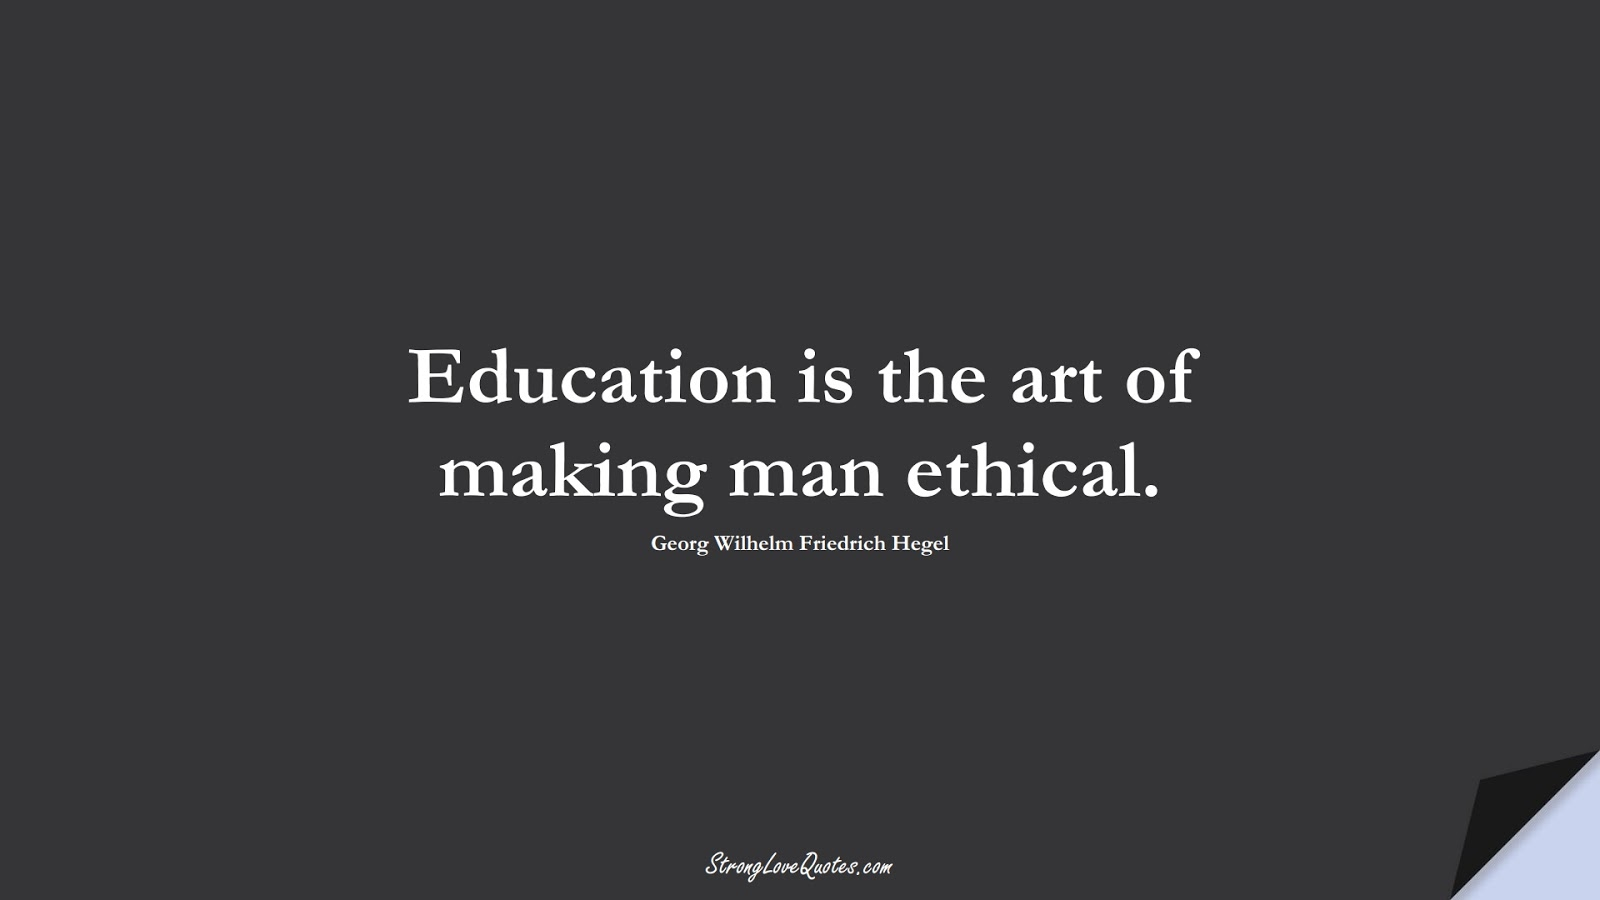 Education is the art of making man ethical. (Georg Wilhelm Friedrich Hegel);  #EducationQuotes